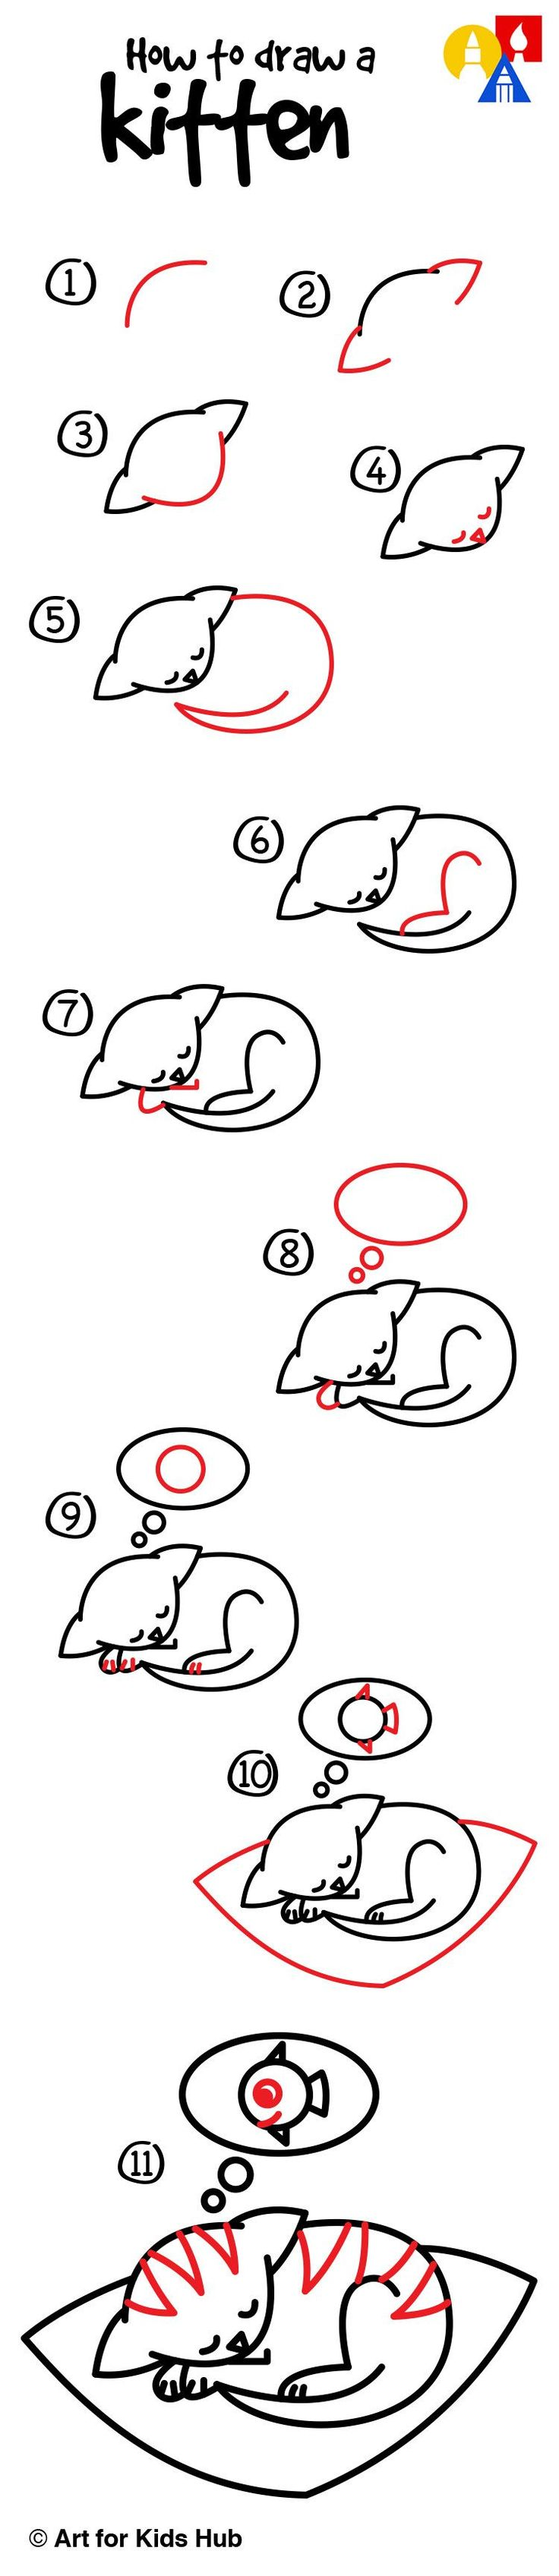 62 best afkh step by steps images on pinterest easy drawings how to draw the cutest kitten ever art for kids hub drawing stepcat altavistaventures Image collections